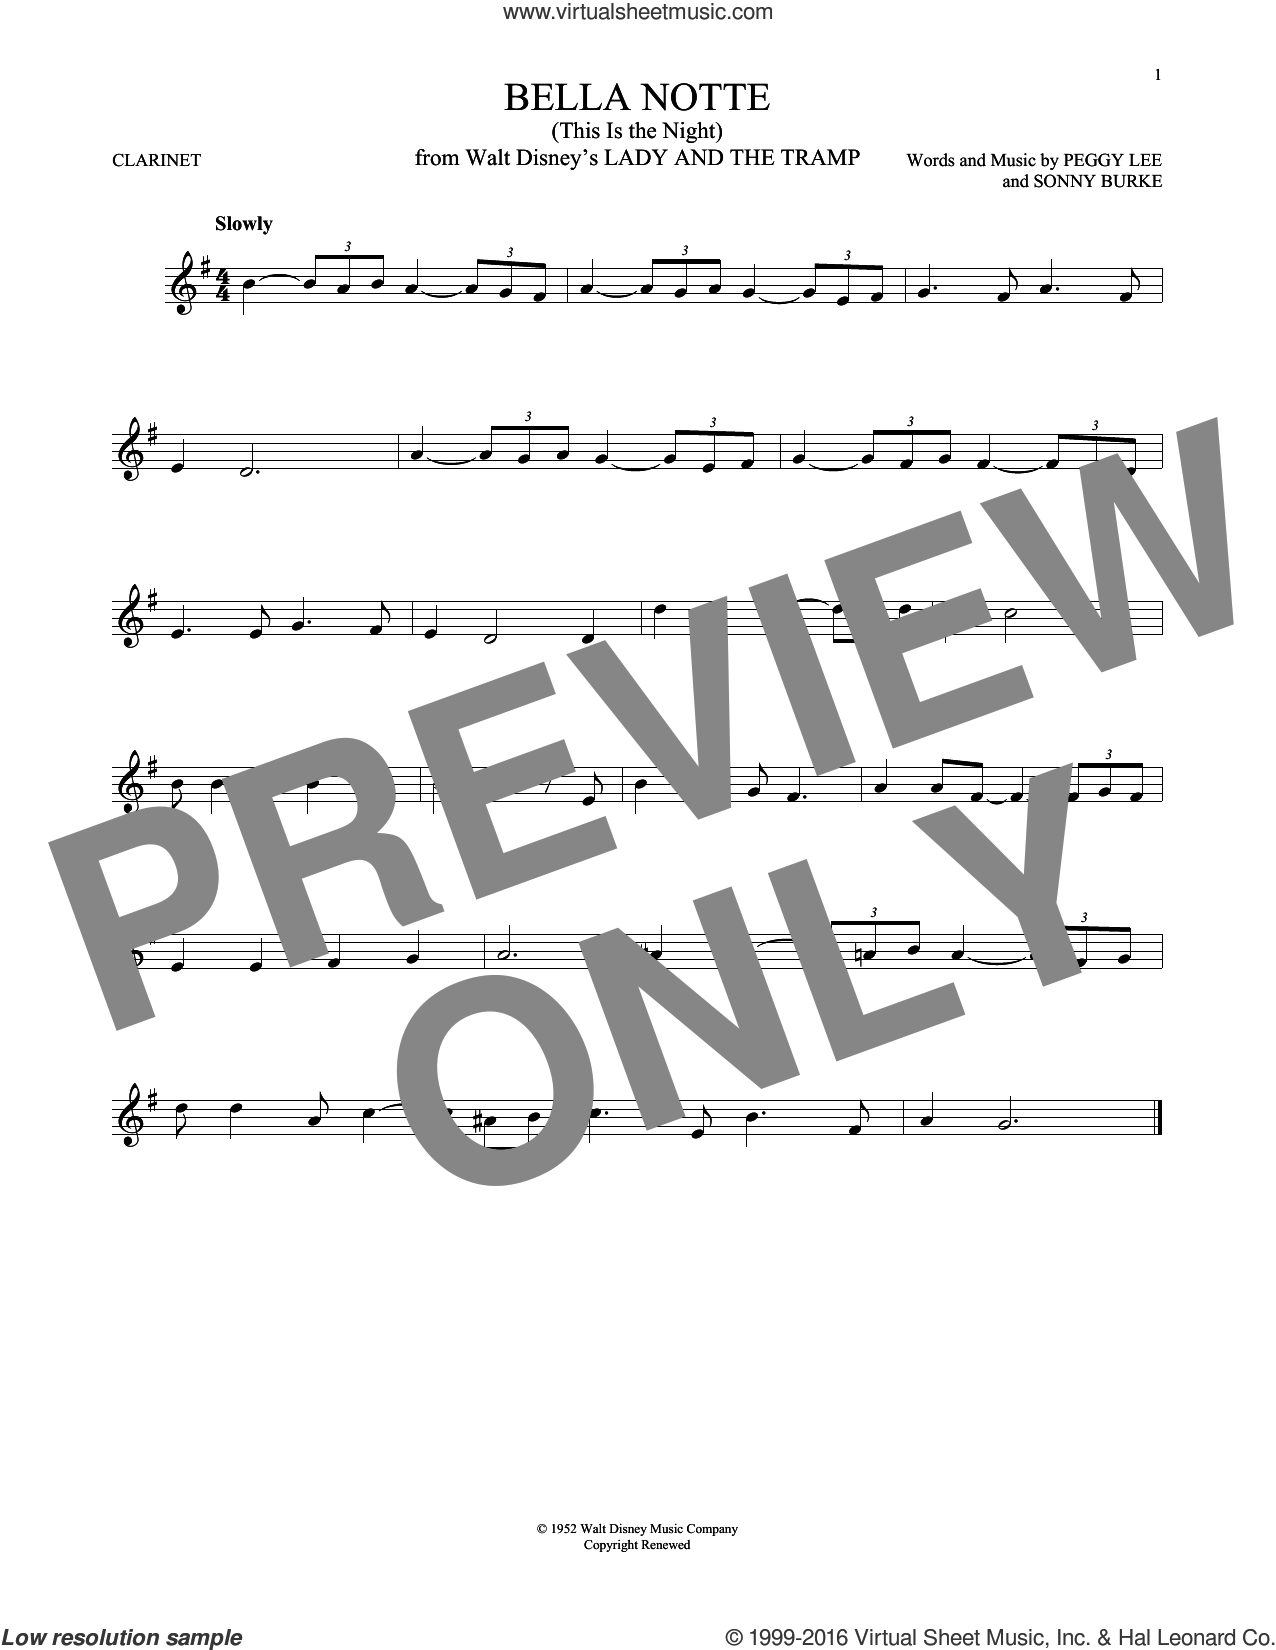 Bella Notte sheet music for clarinet solo by Peggy Lee, Peggy Lee & Sonny Burke and Sonny Burke, intermediate skill level